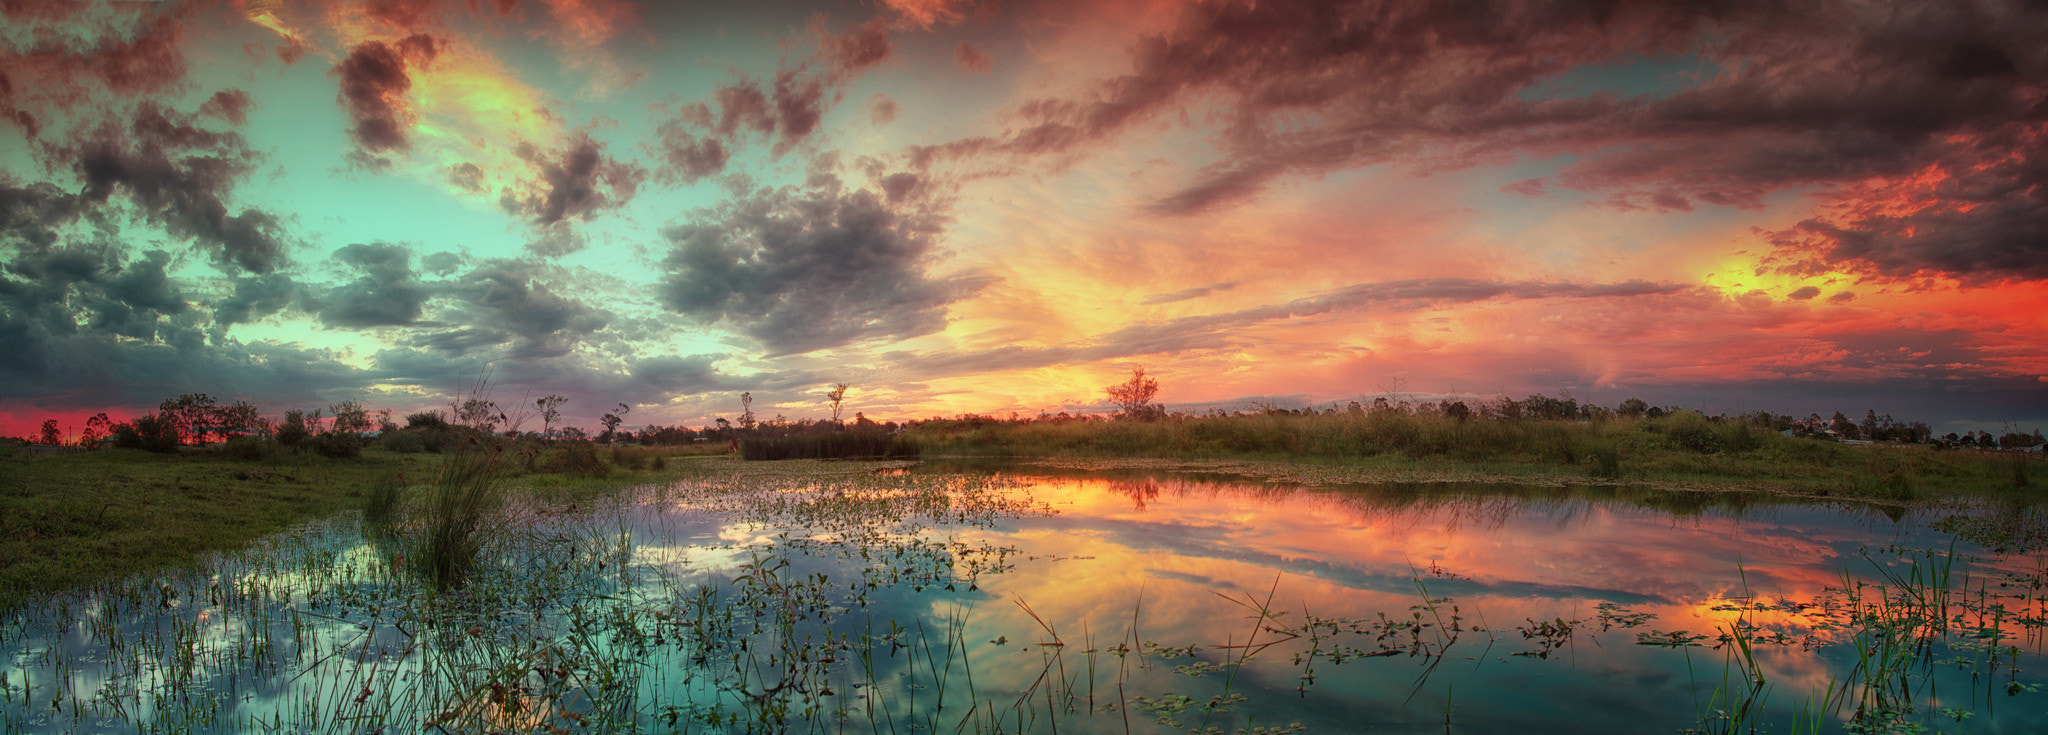 Photograph A must Click (Big Panorama) by Steve mcdermott on 500px